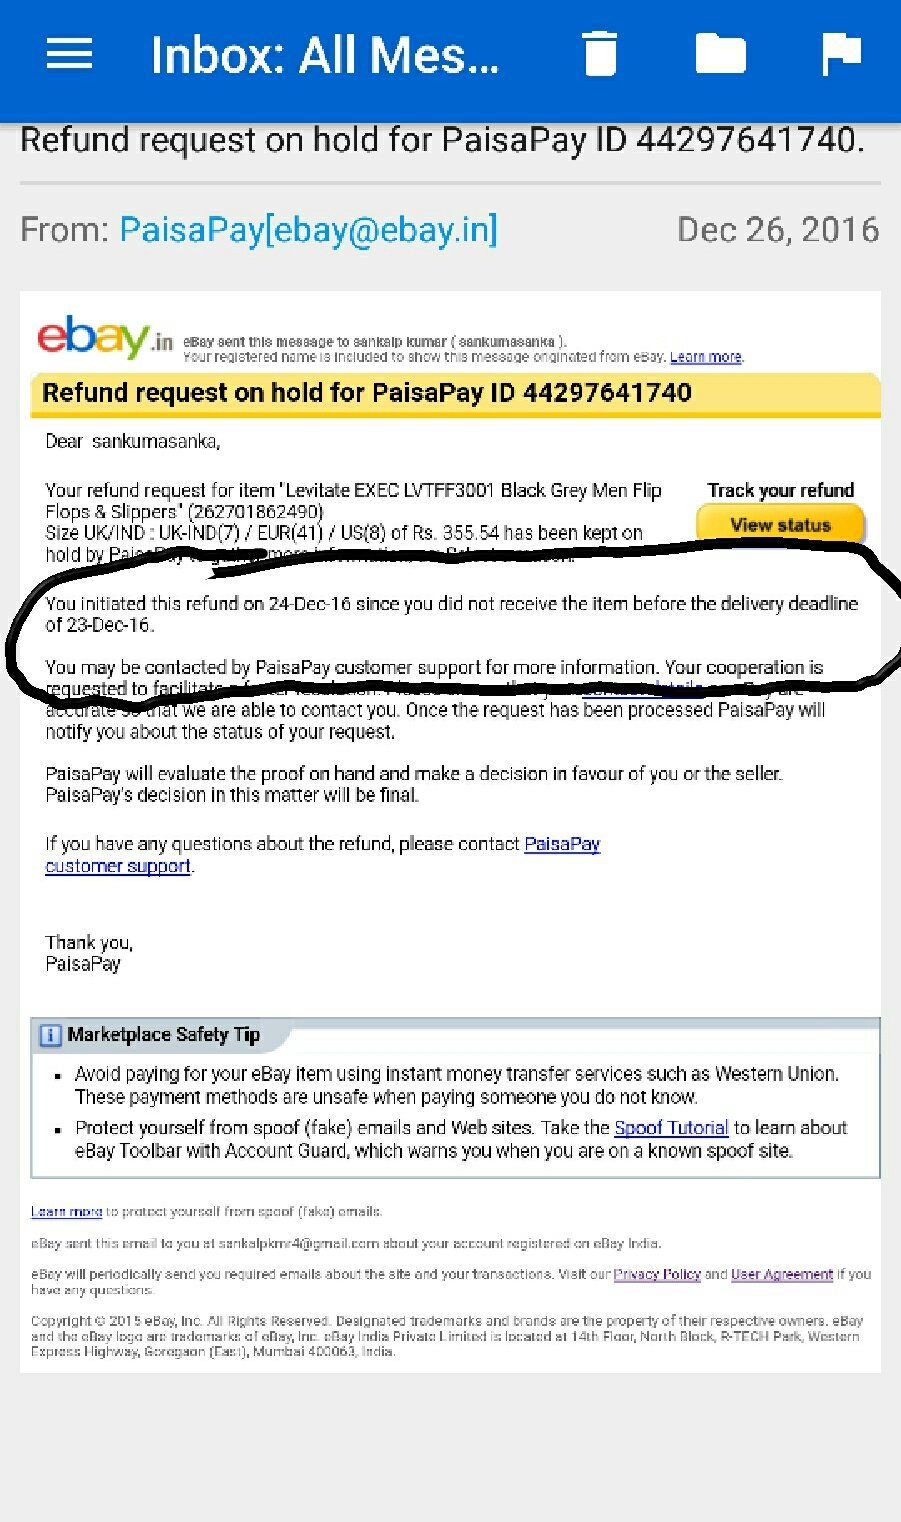 Sankalp Kumar On Twitter Don T Know What S Wrong Is Going With Your Policies Or U R Just Fooling Your Customer Askebay Ebay Ebaydotinhelp Have A Look At It Https T Co Jvcw5io75i